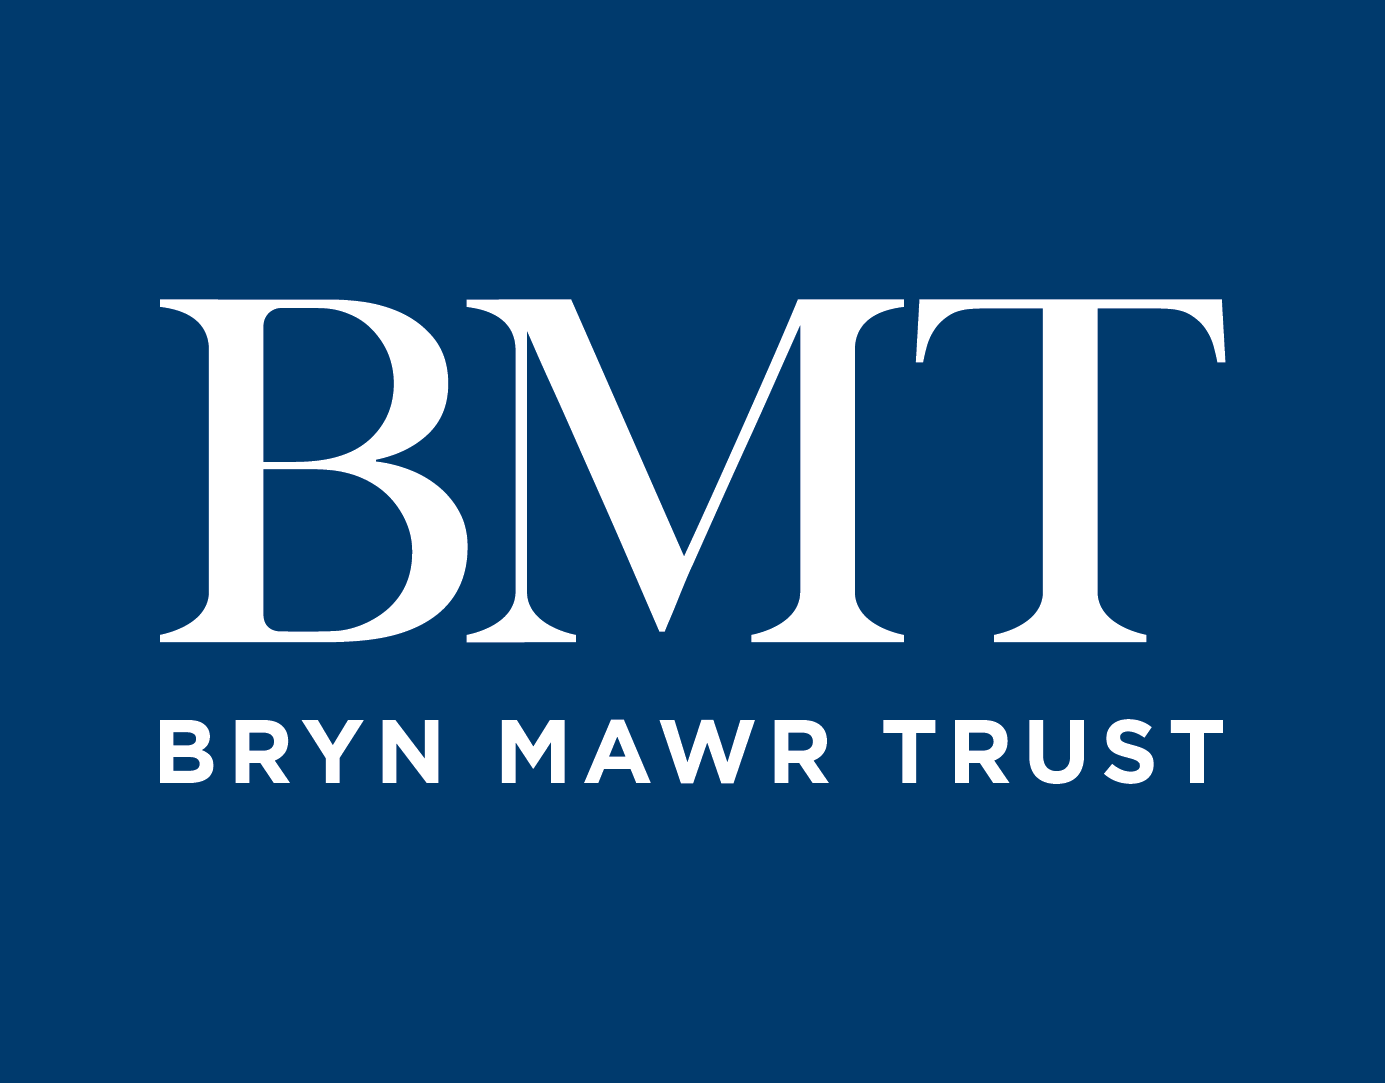 Bryn Mawr Trust Webcast on June 23 to Explore Long-Term Care Planning Considerations